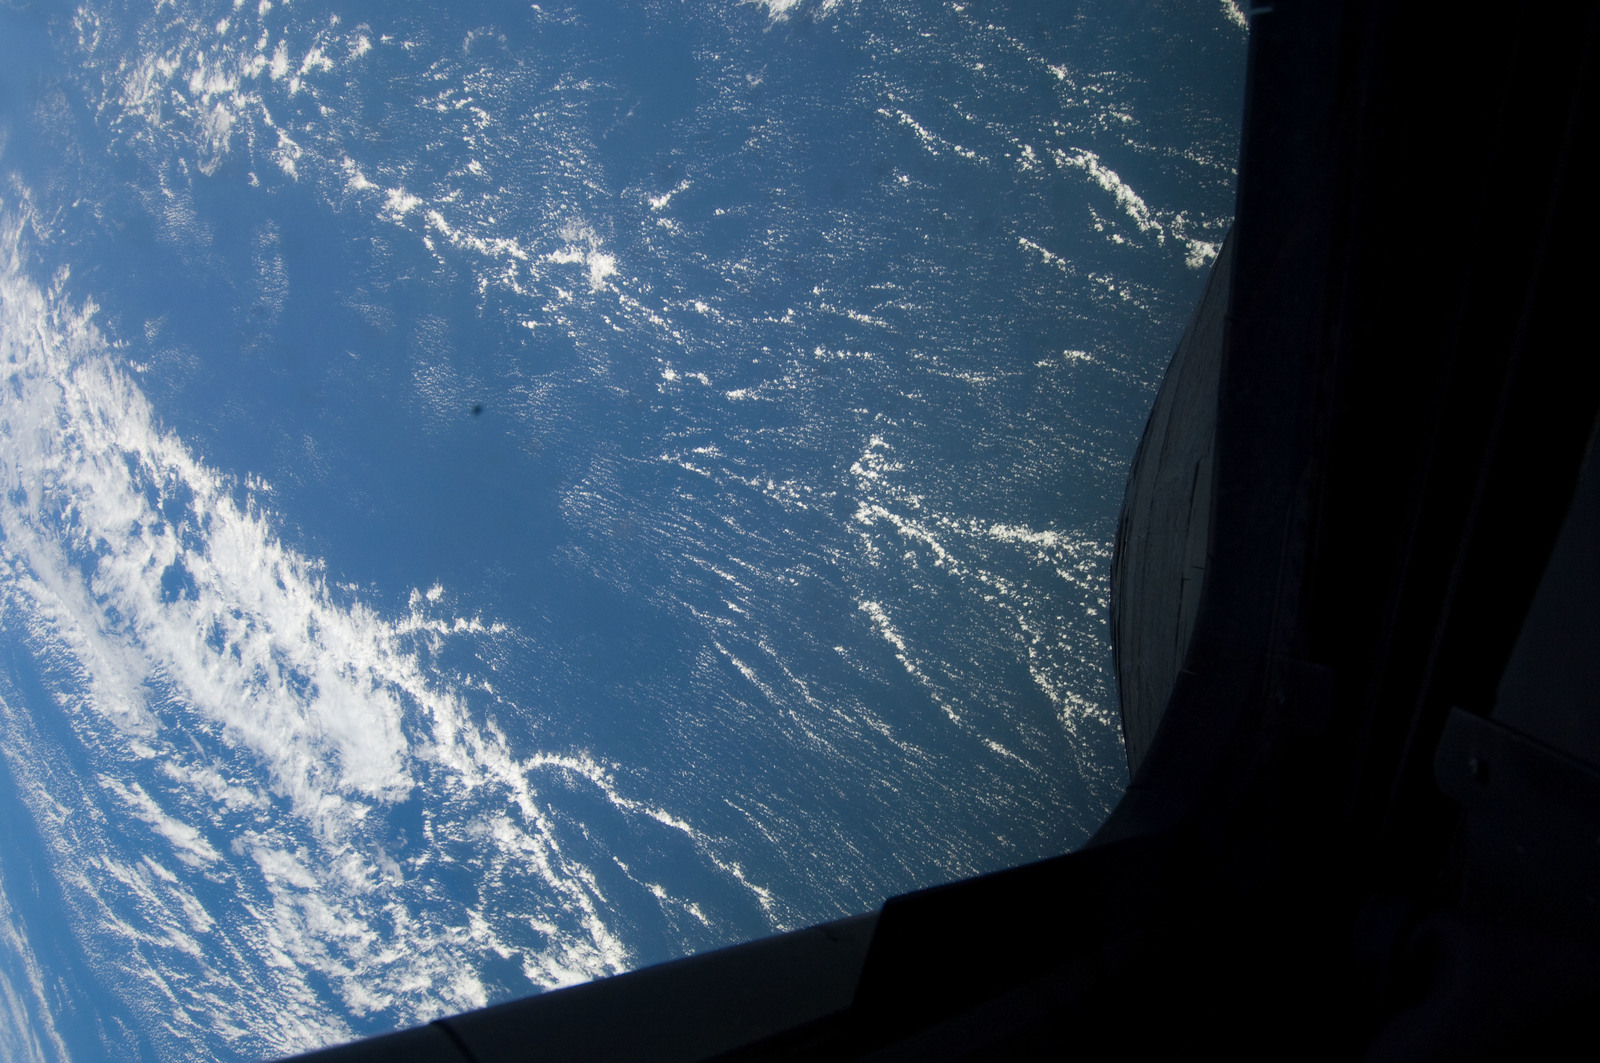 s133E006935 - STS-133 - Earth Observation taken by the STS-133 crew